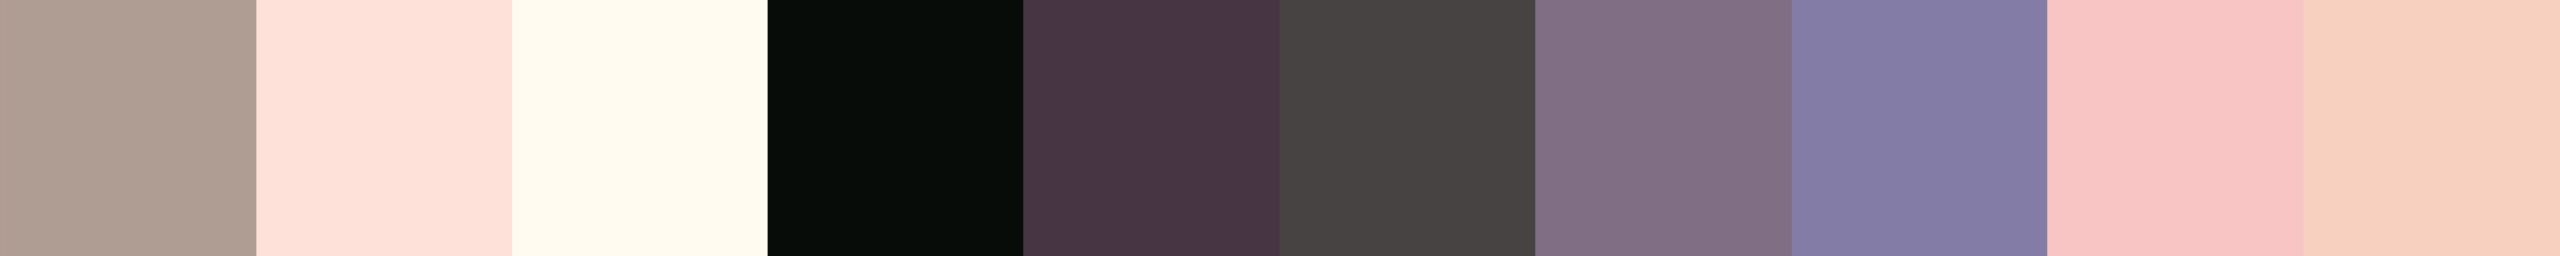 539 Astraia Color Palette